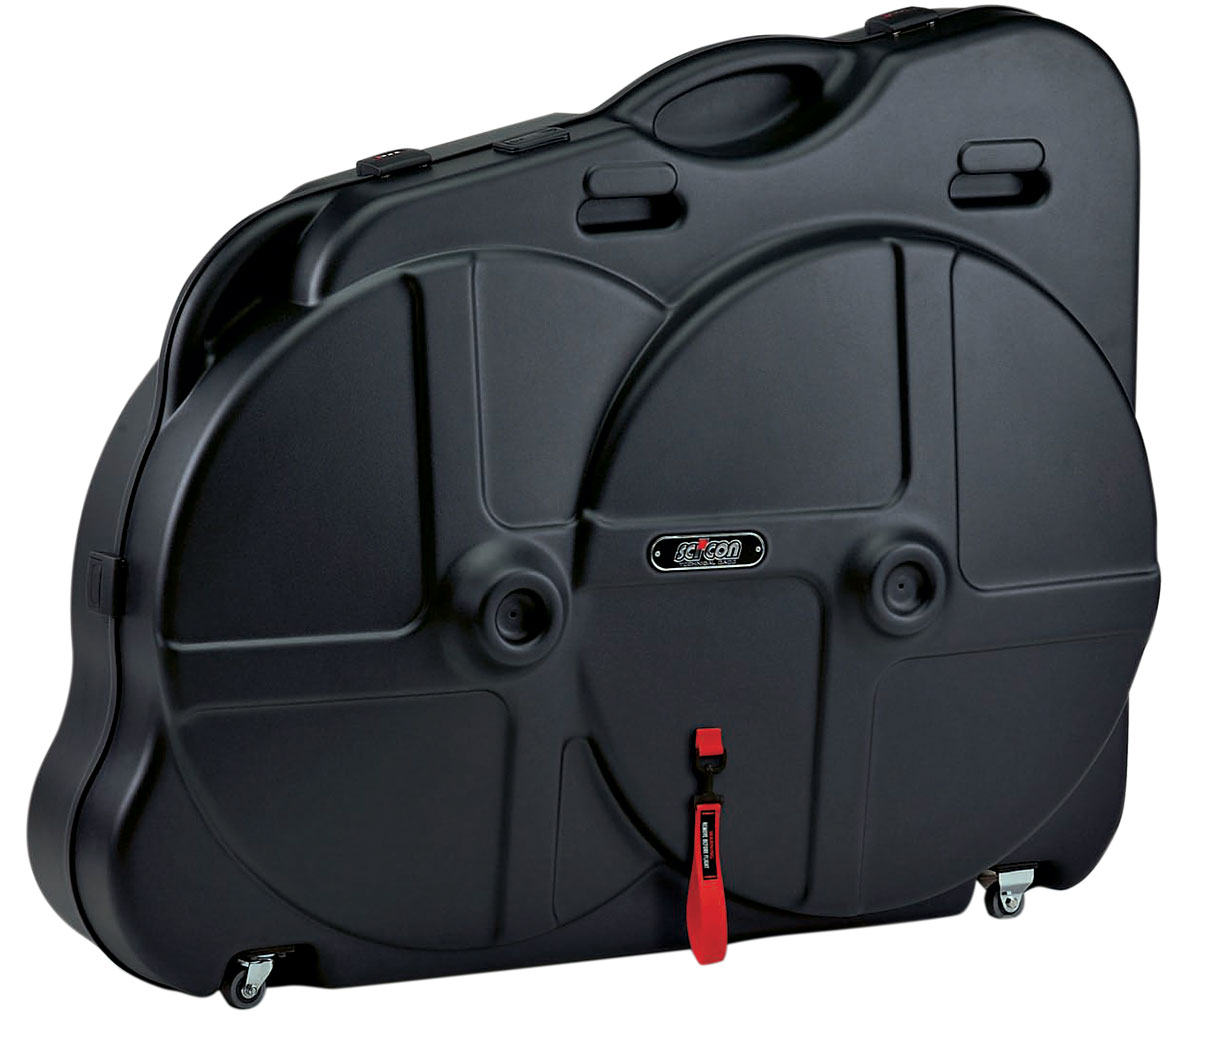 9f553c34aa82 Scicon Aerotech Evolution bike box review - Cycling Weekly